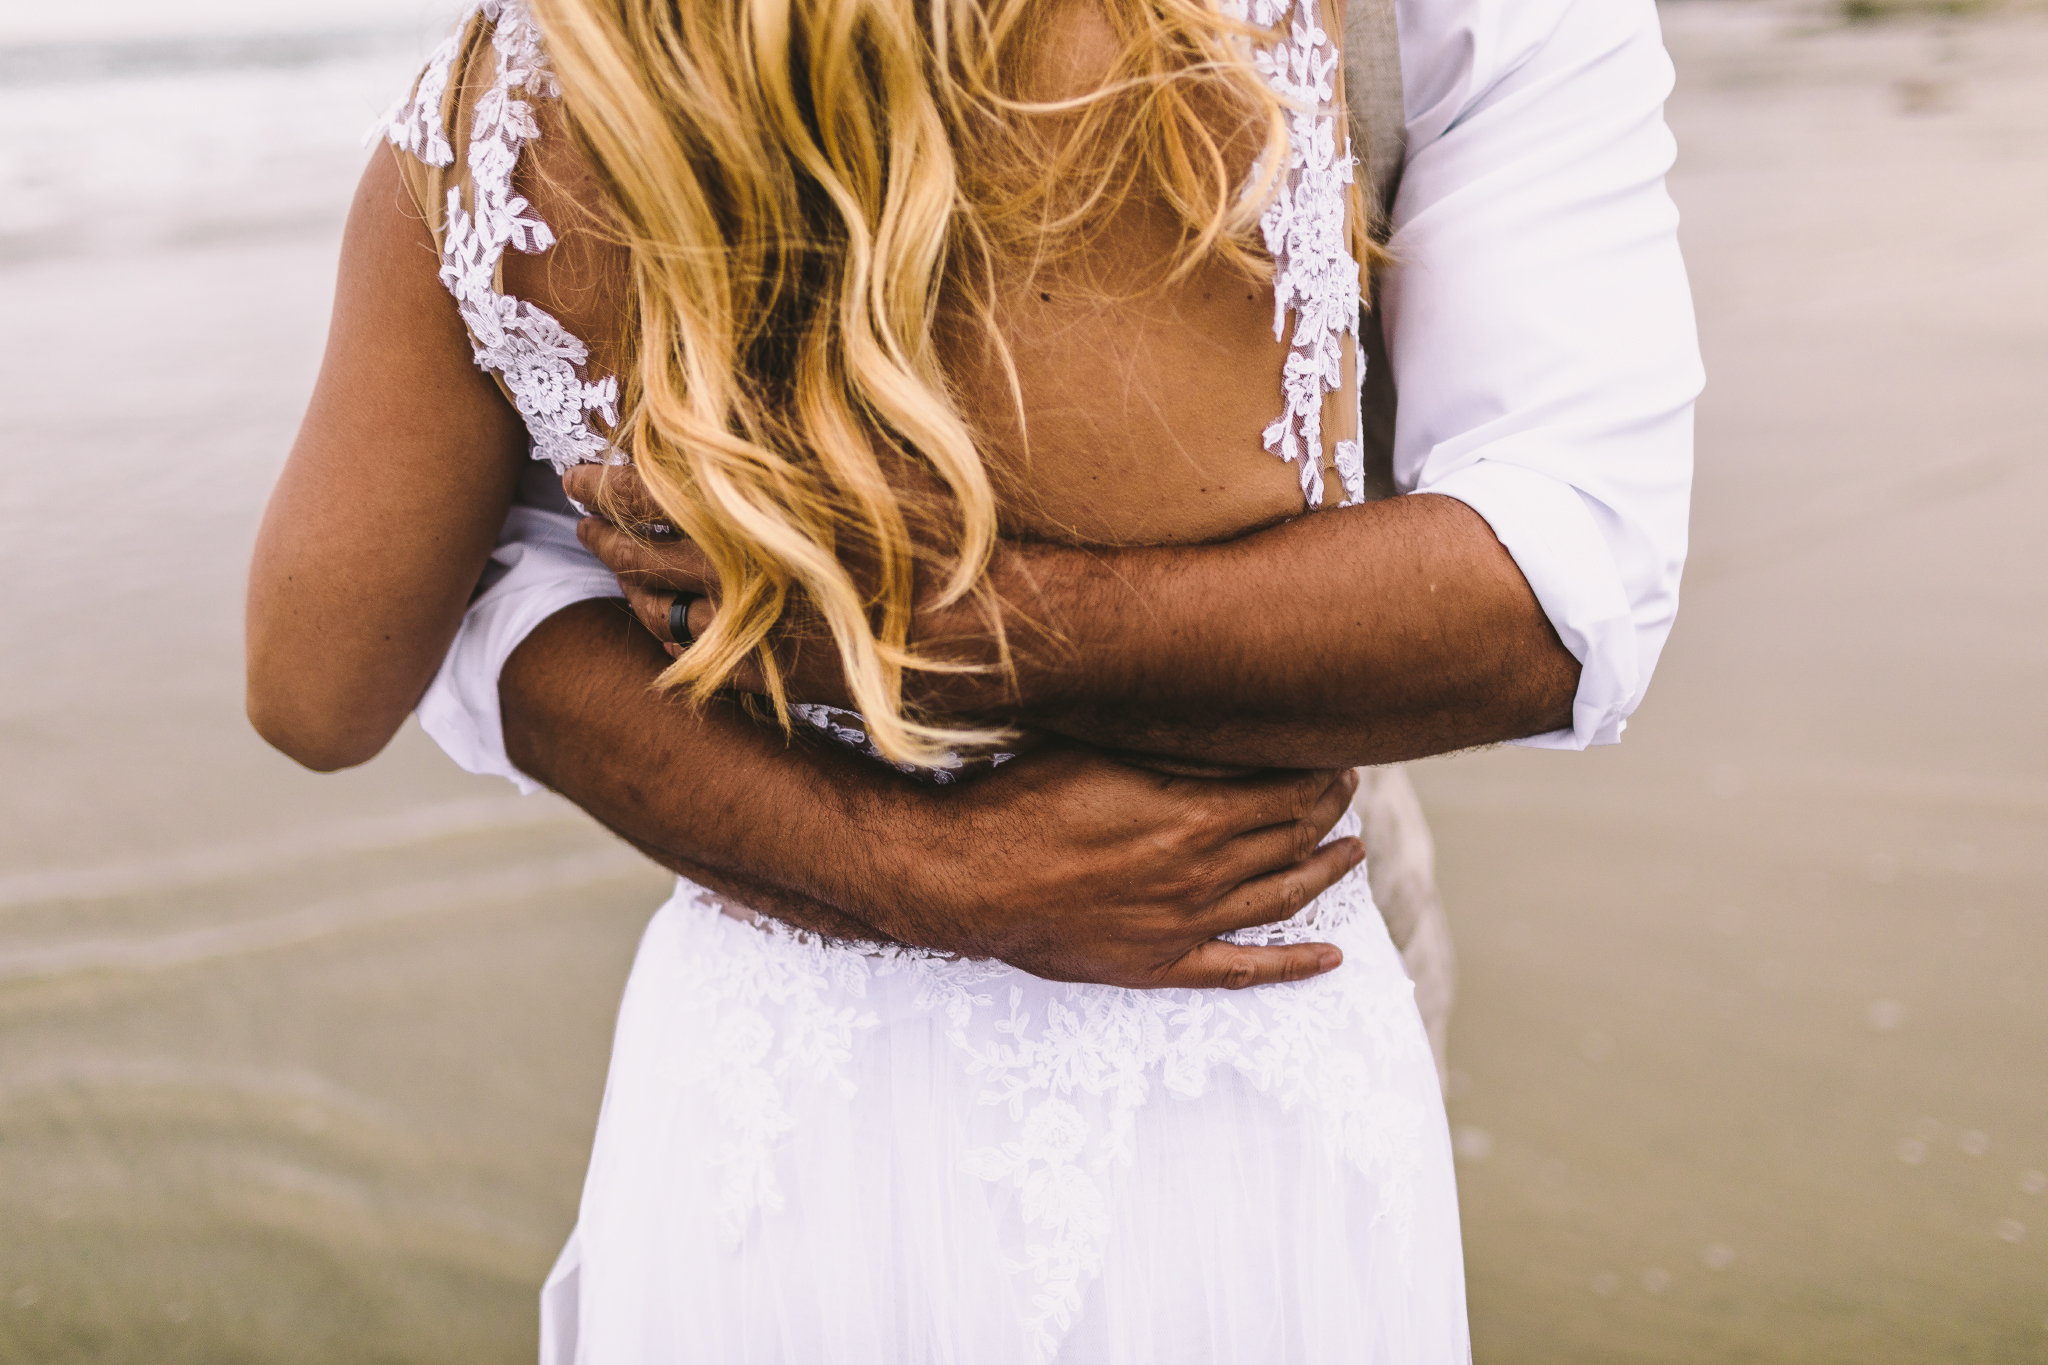 san diego wedding   photographer | torso of bride's back with groom hugging her from her front